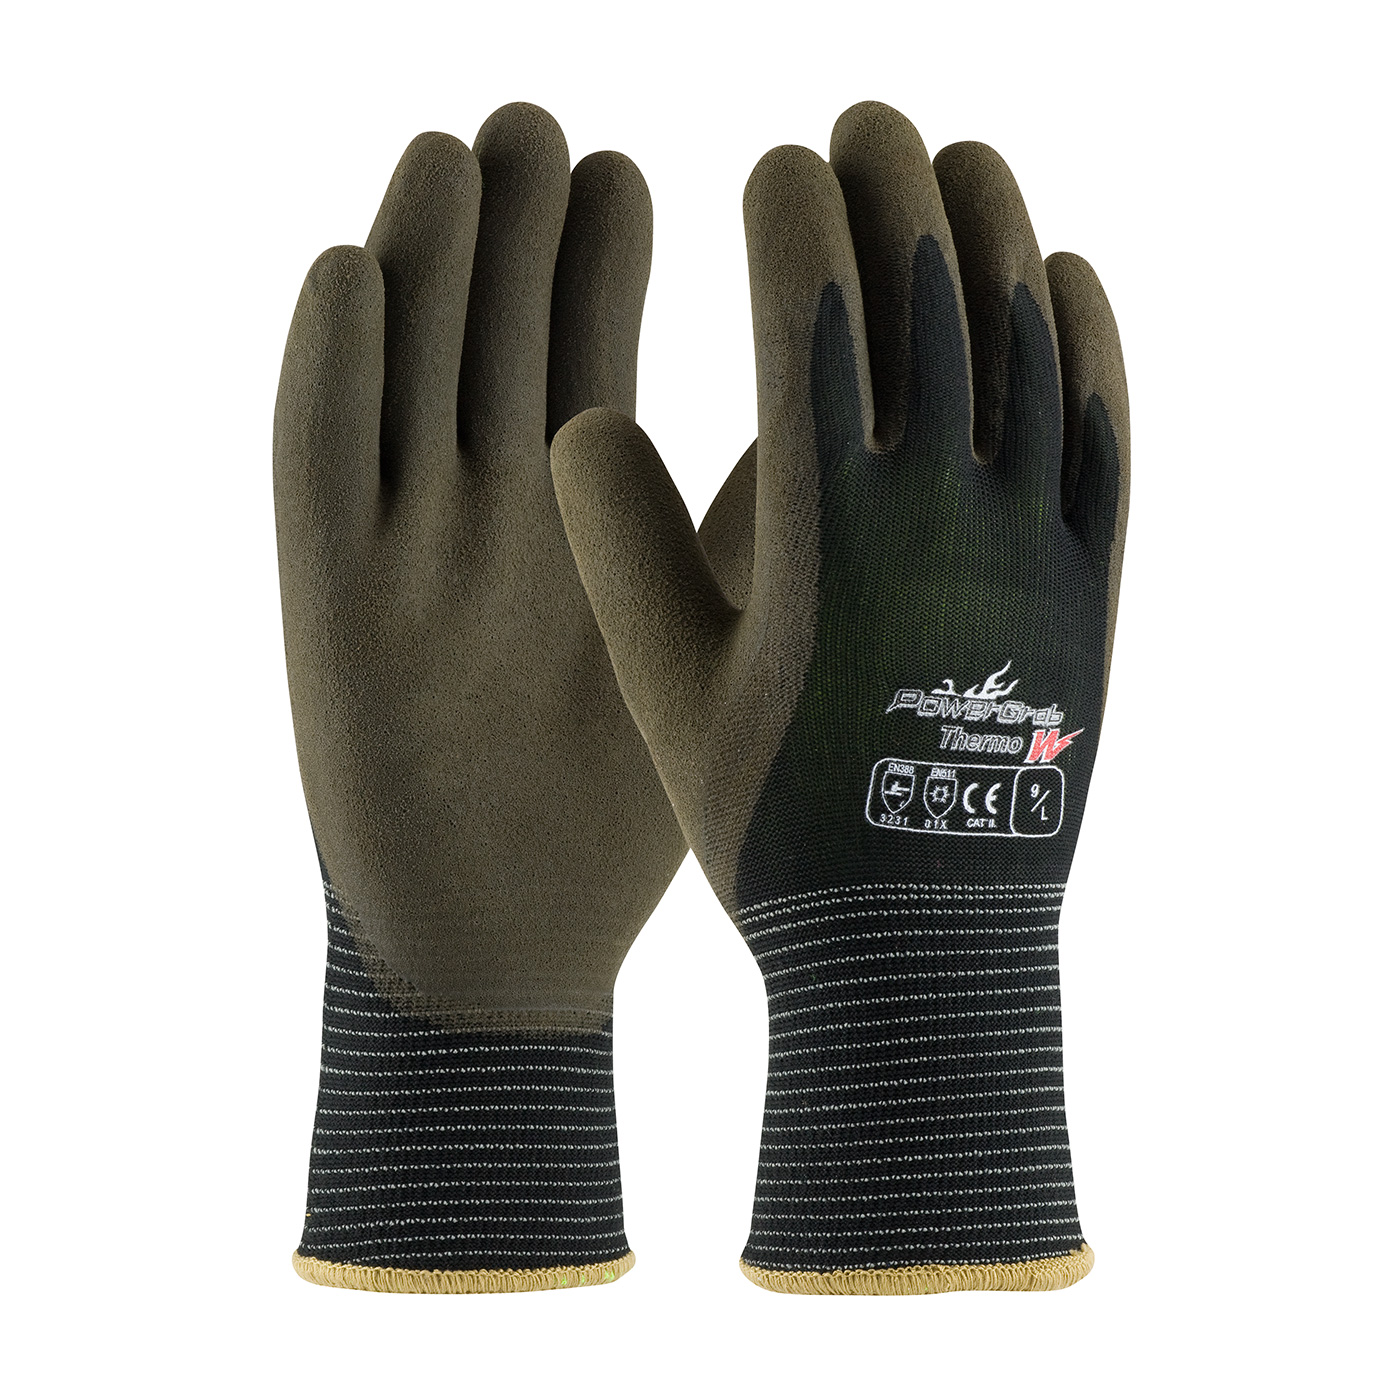 #41-1430 PIP owerGrab™ Thermo Seamless Knit Nylon Glove with Acrylic Liner and Latex MicroFinish Grip on Palm & Fingers